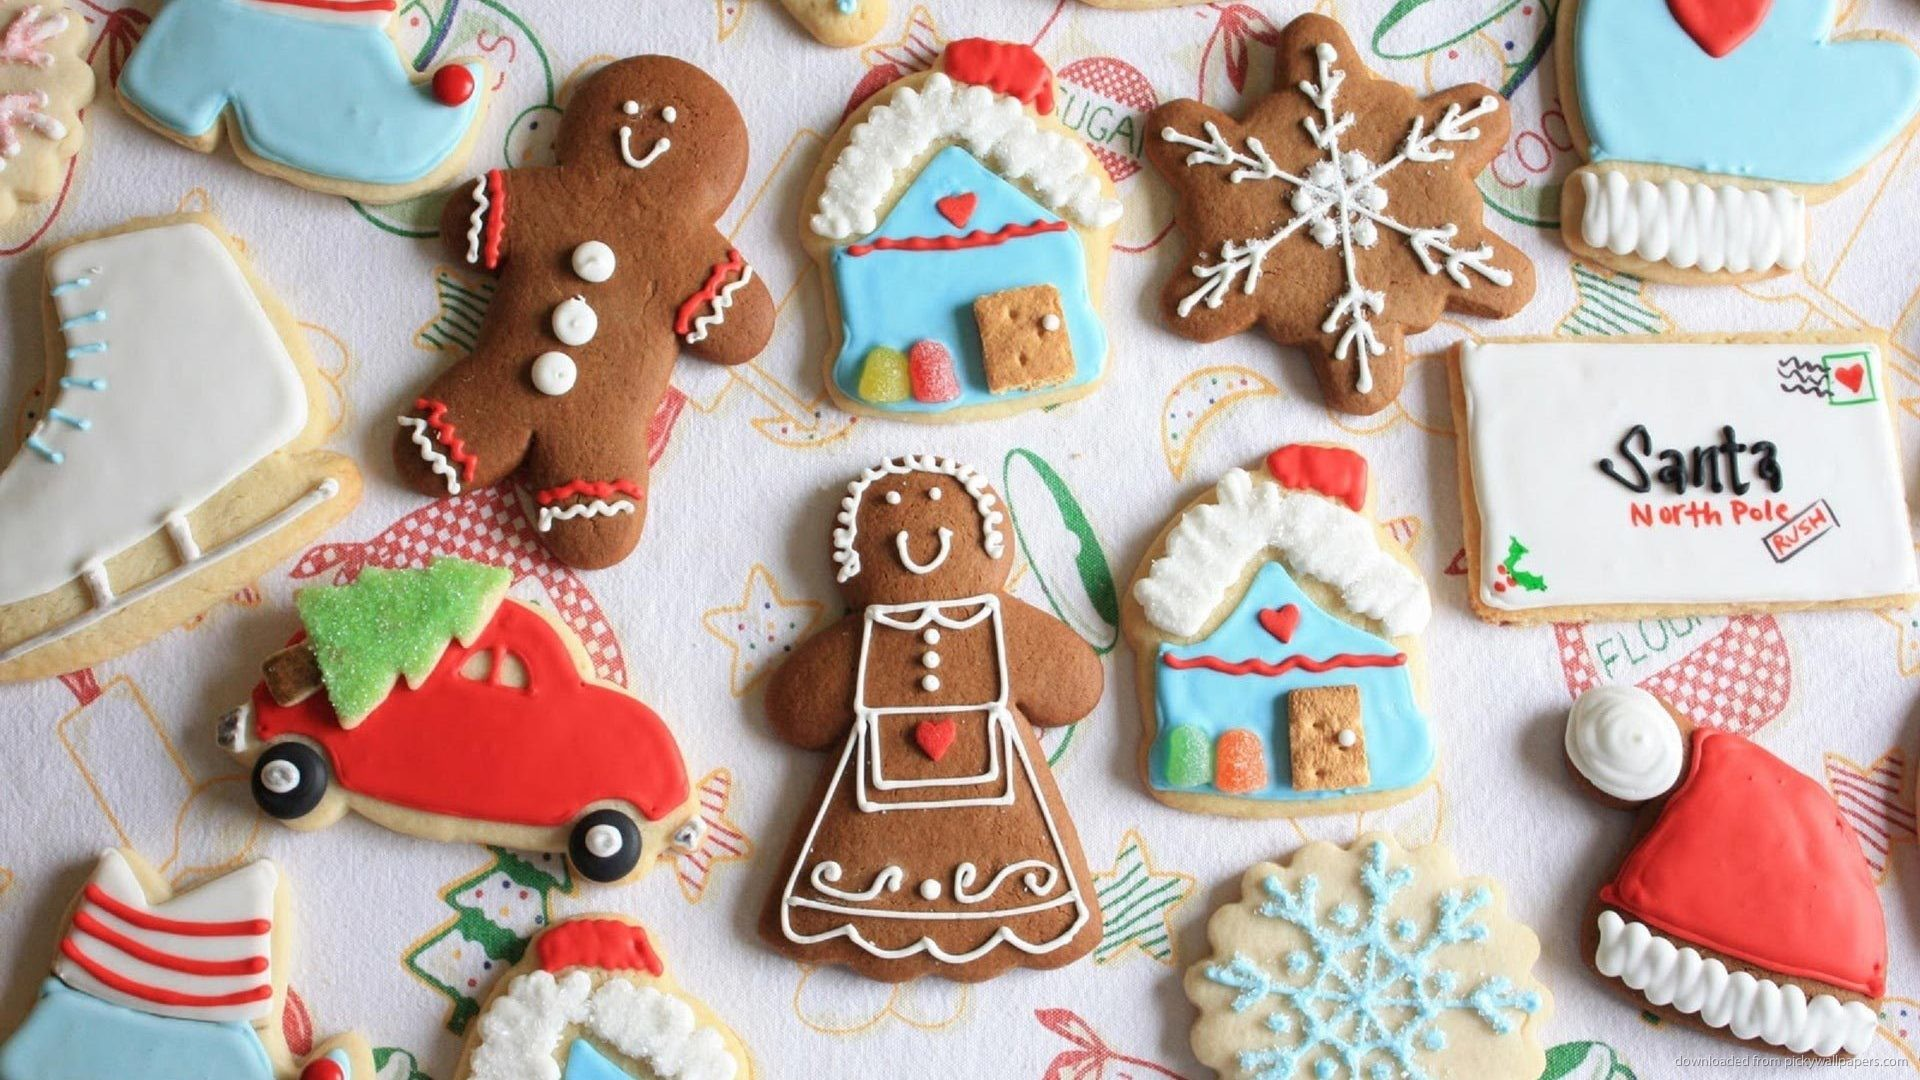 1920x1080 Cute Assorted Holiday Christmas Cookies Wallpaper Screensaver For .